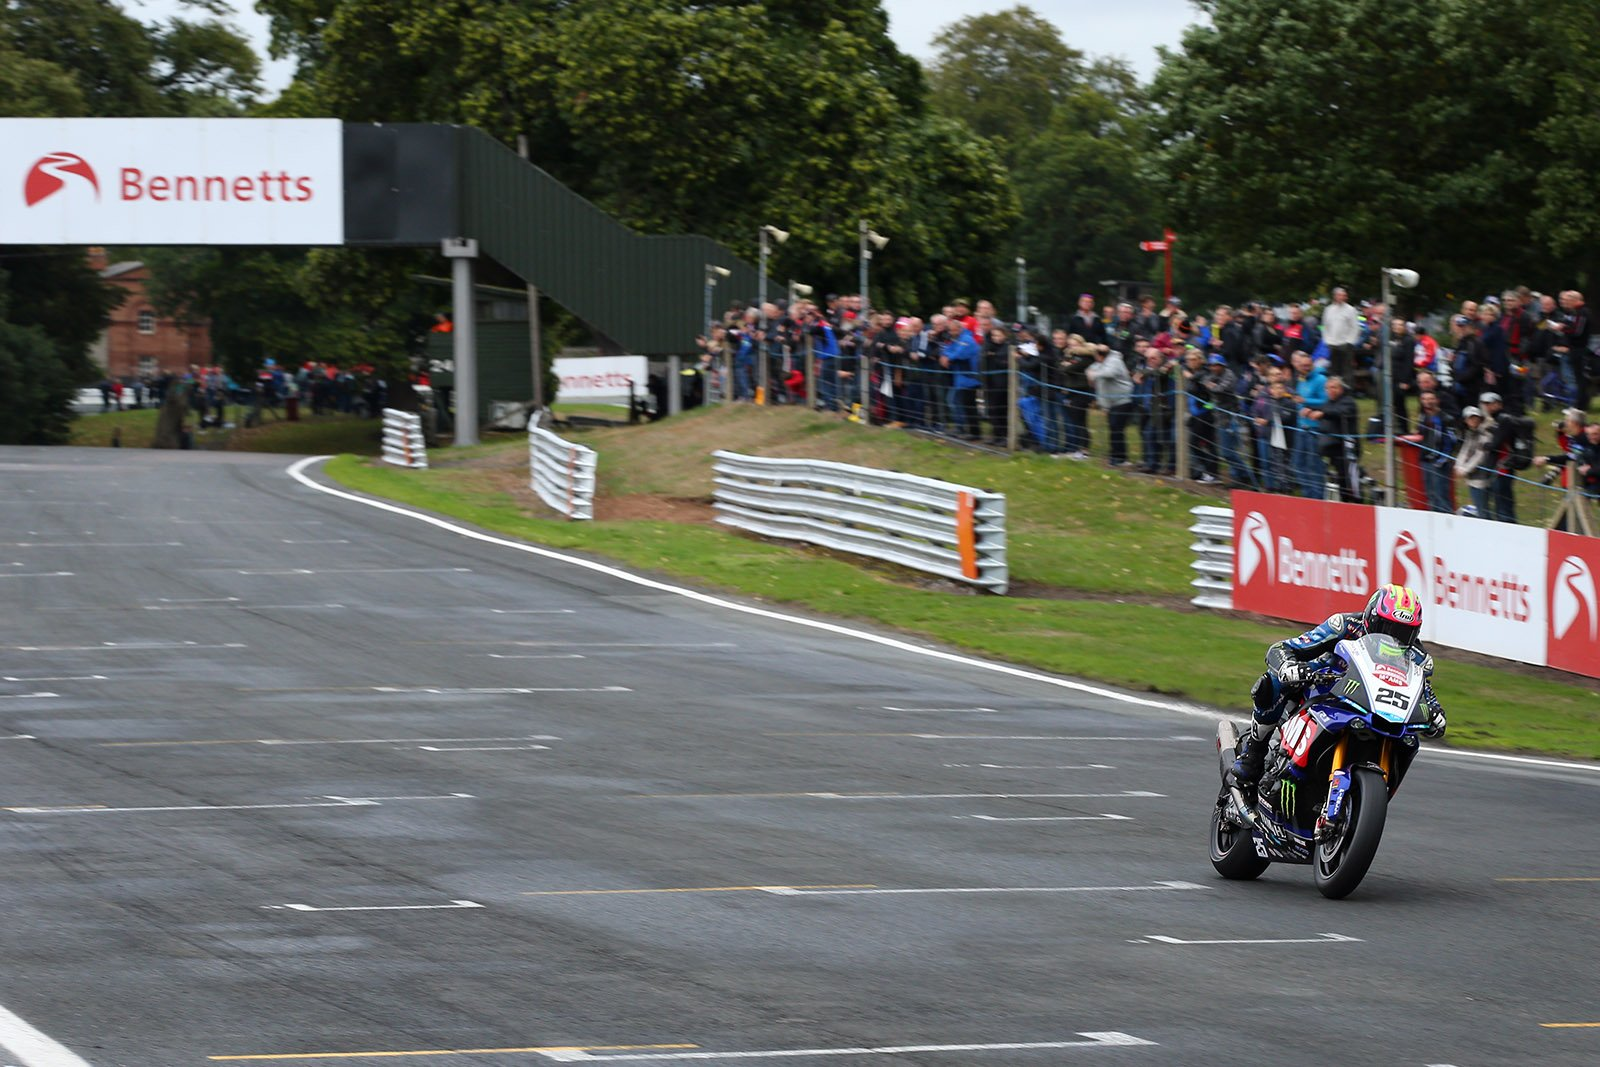 Josh Brookes will be disappointed with the weekends results credit Tim Keeton (Impact Images Photography)